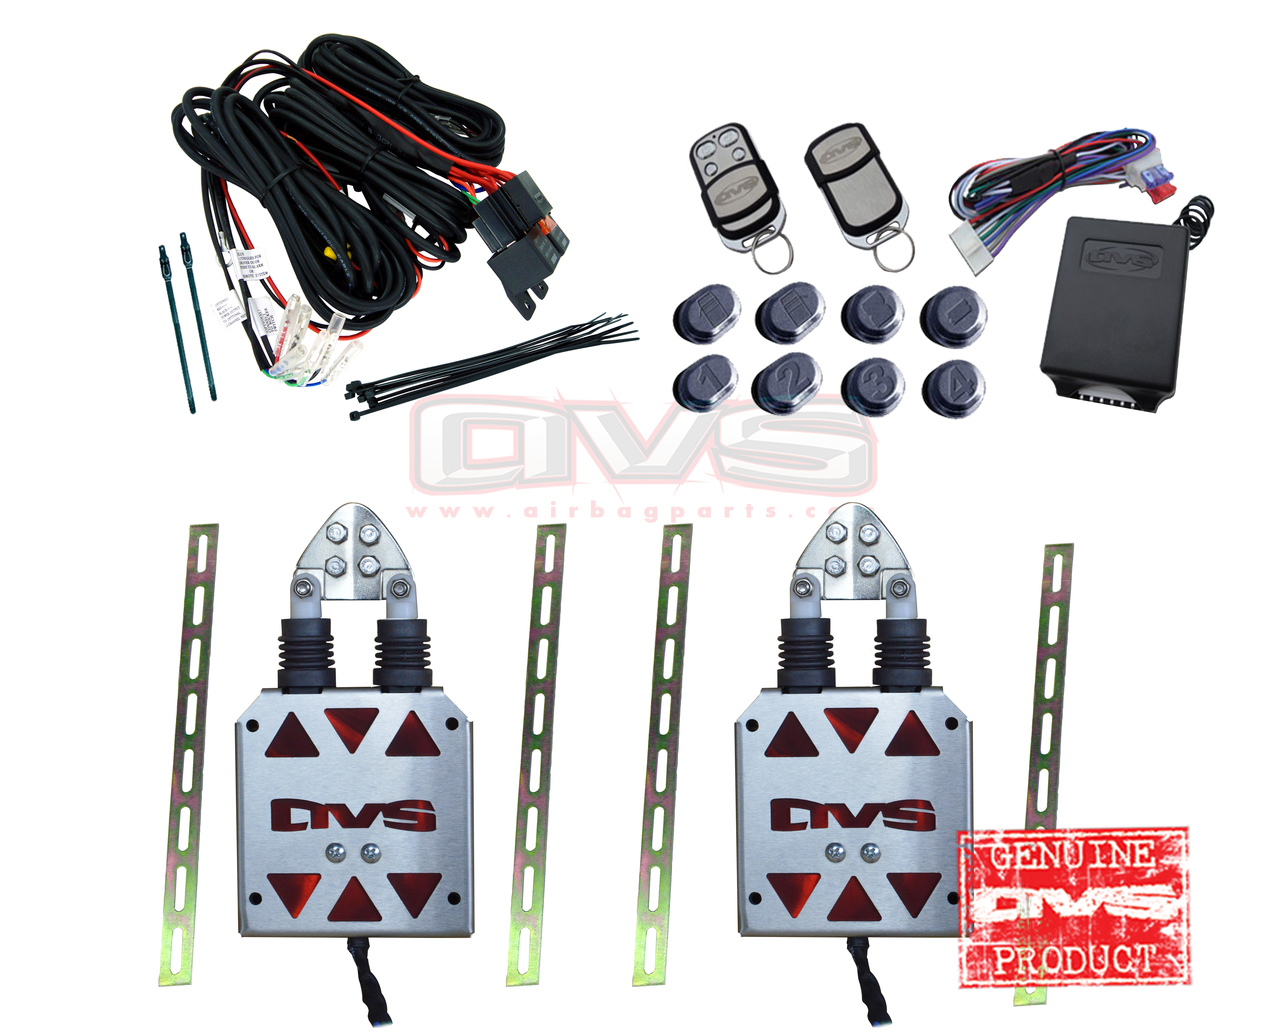 Pioneer Wiring Harness System Remote Control : Avs shaved door kit with remote control system wiring